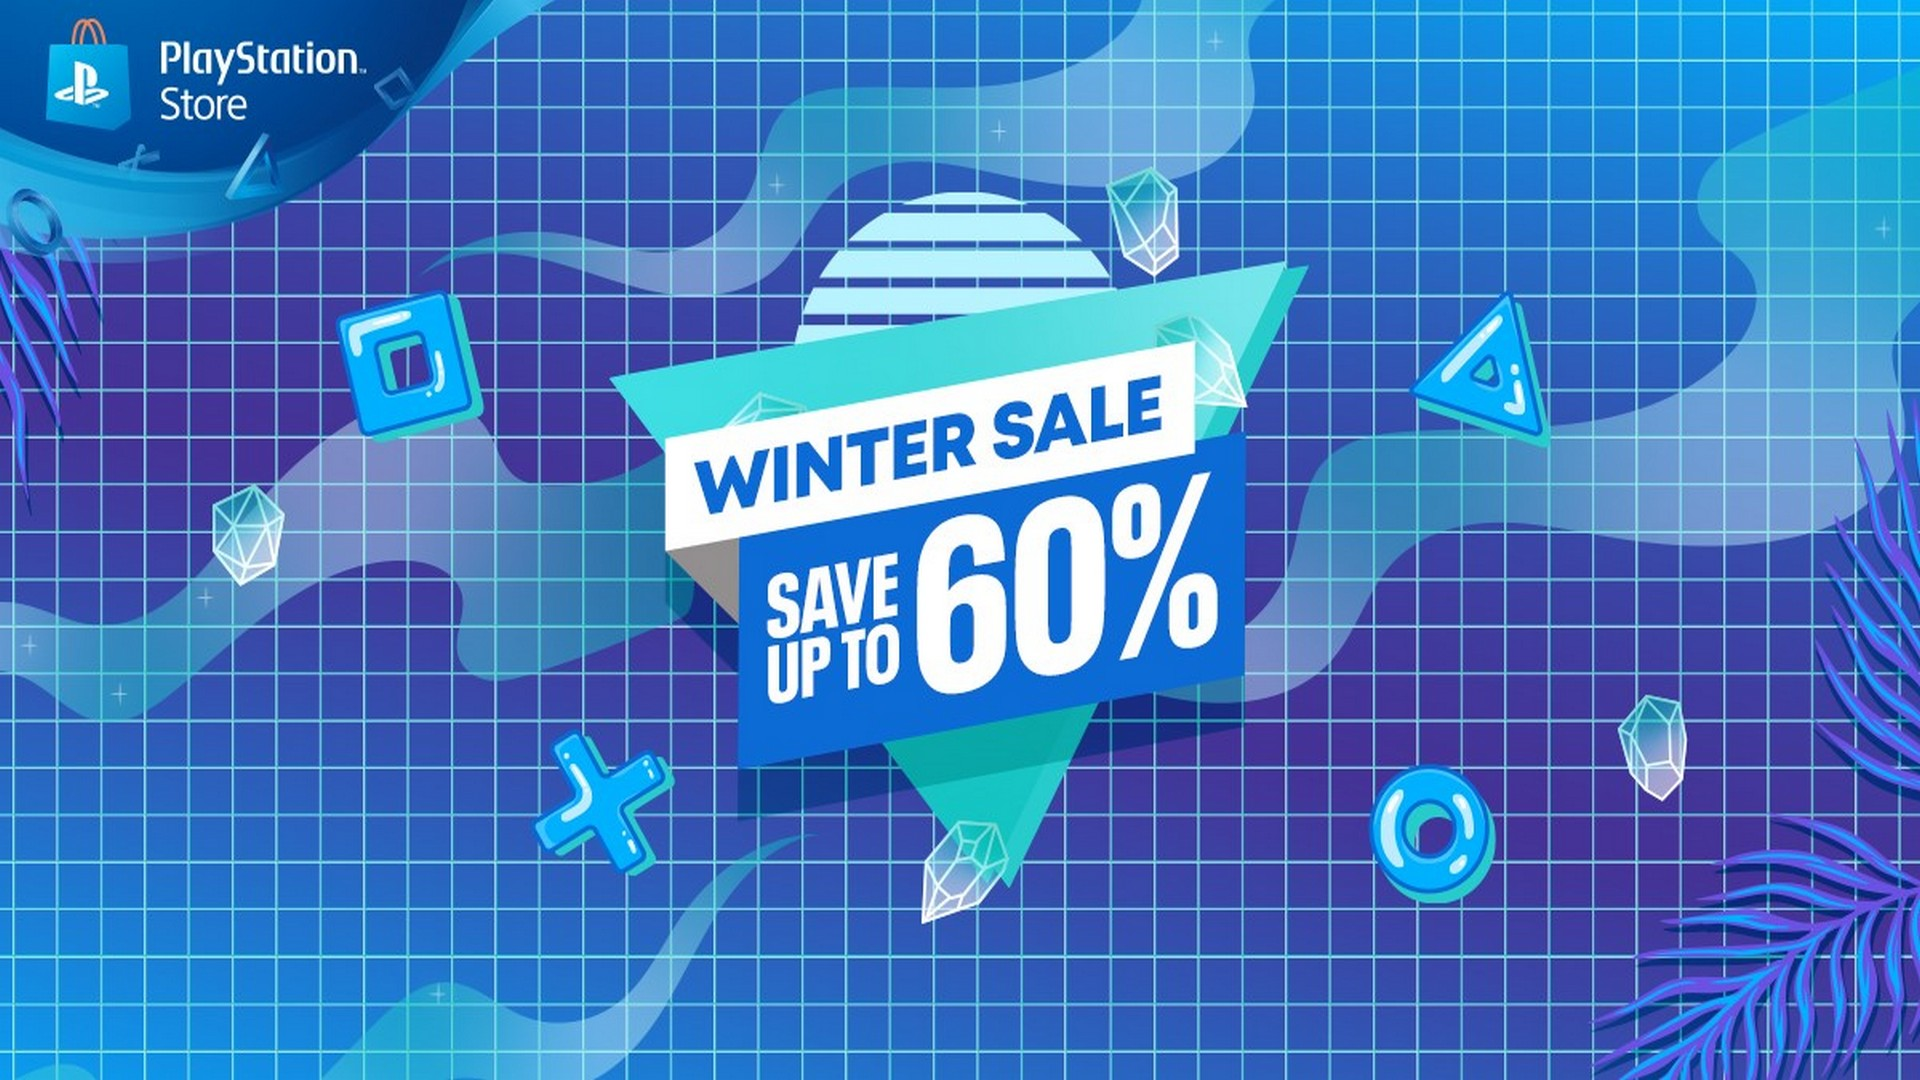 Playstation Store S Winter Sale Is Back Save Up To 60 On Ps4 Titles And Add Ons Mkau Gaming